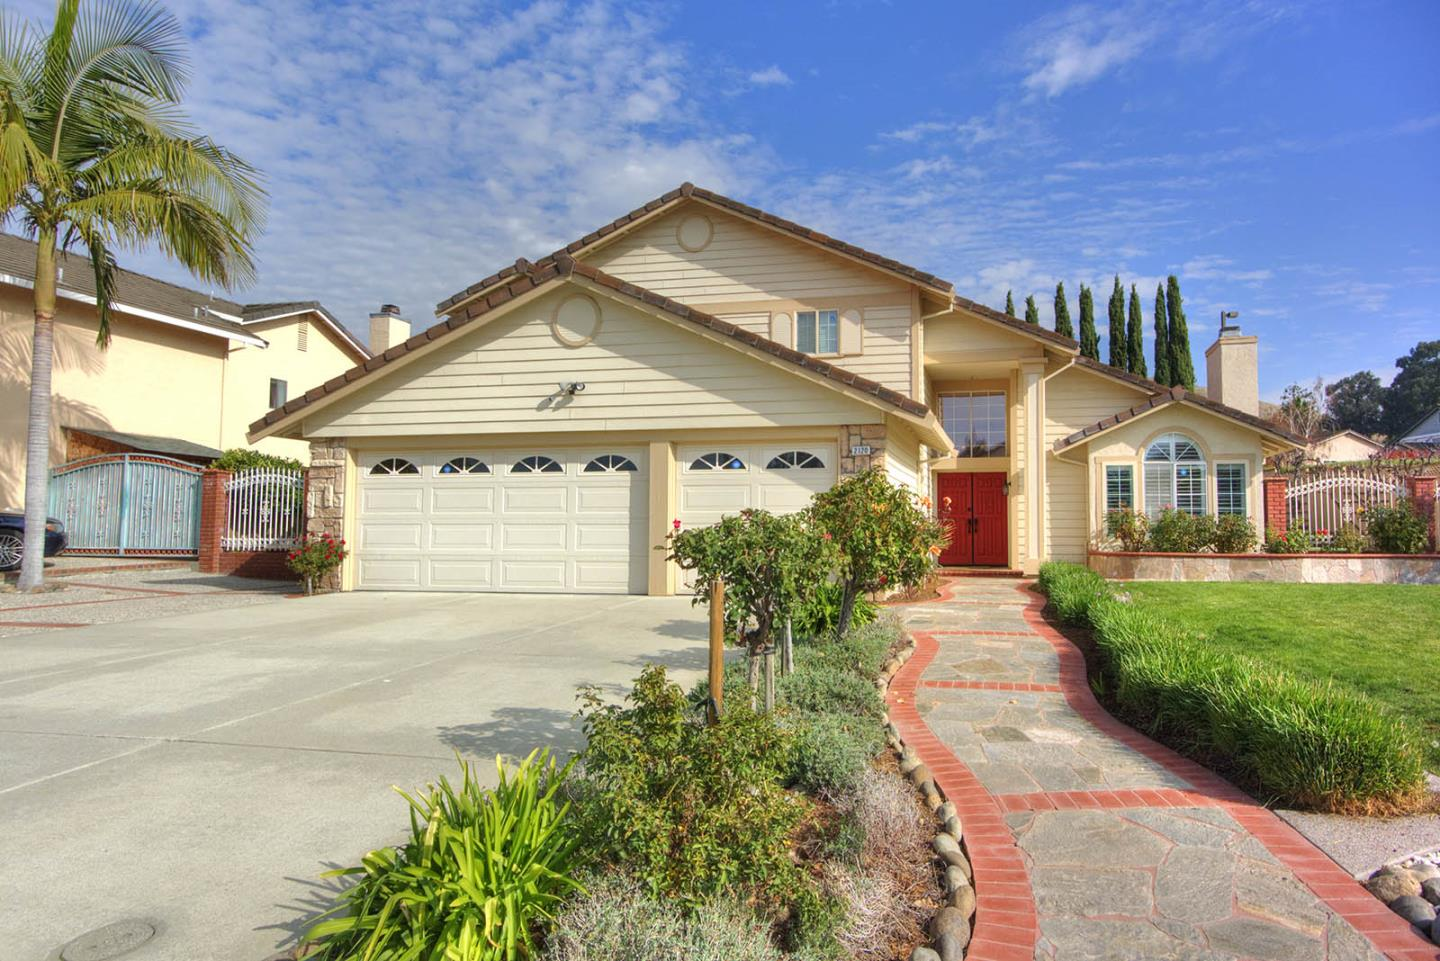 Single Family Home for Sale at 2120 Wellington Drive 2120 Wellington Drive Milpitas, California 95035 United States